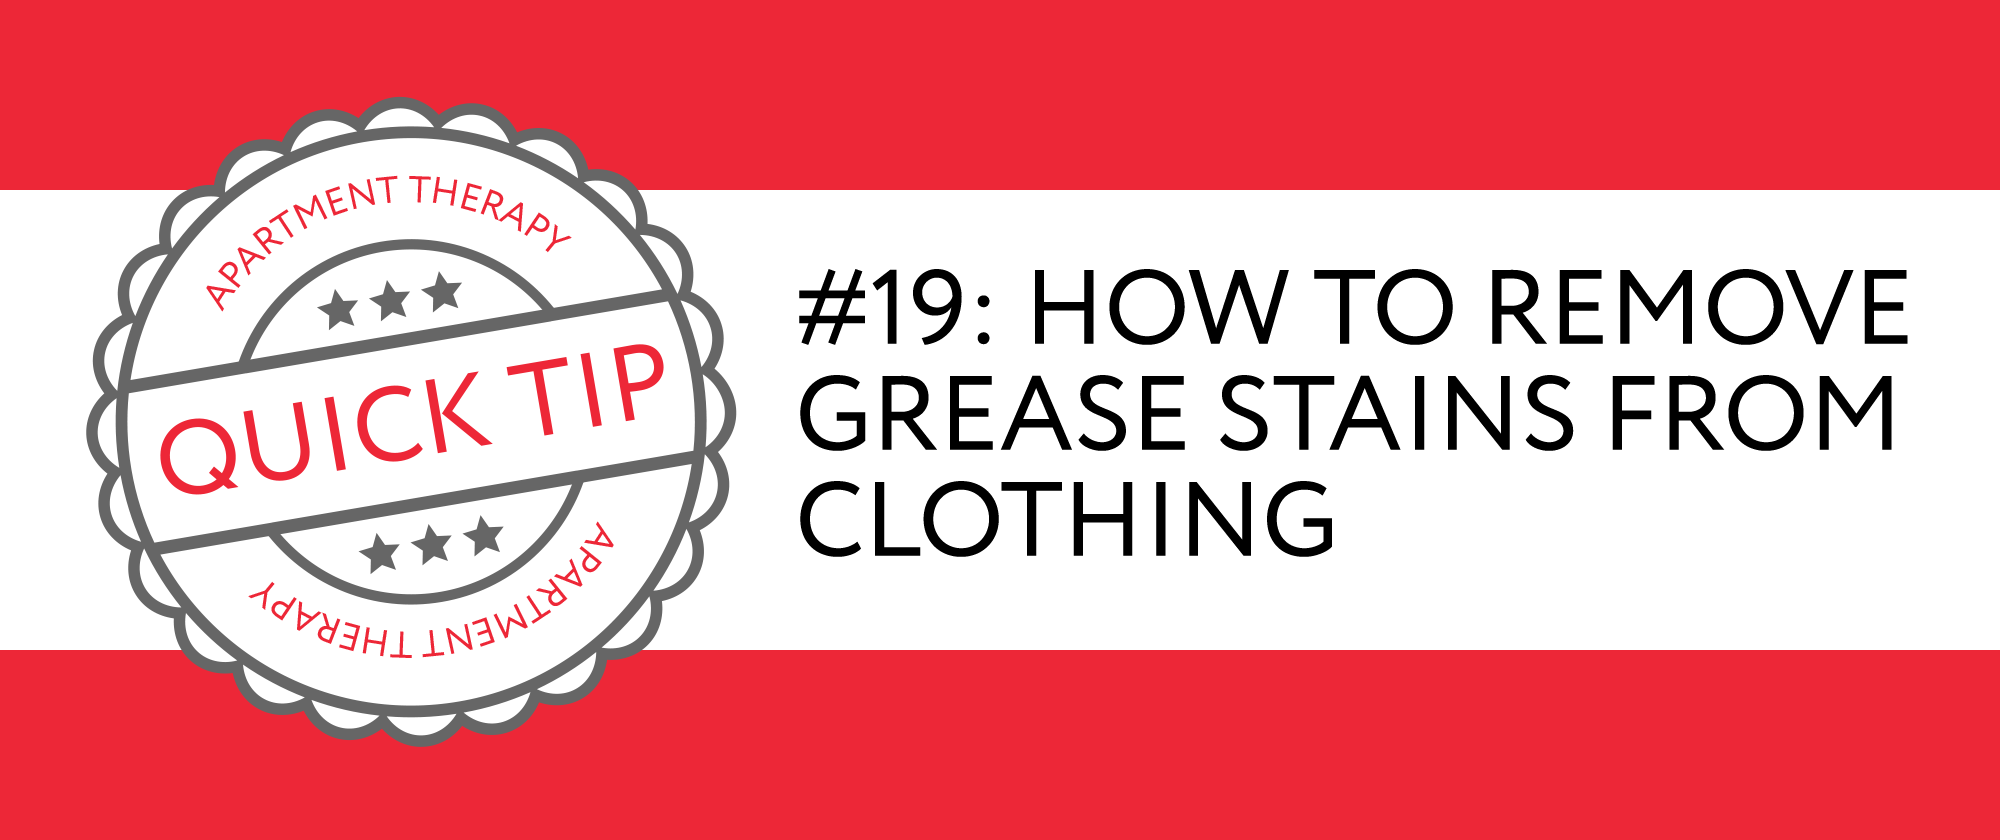 Quick Tip #19: How to Remove Grease Stains from Clothing